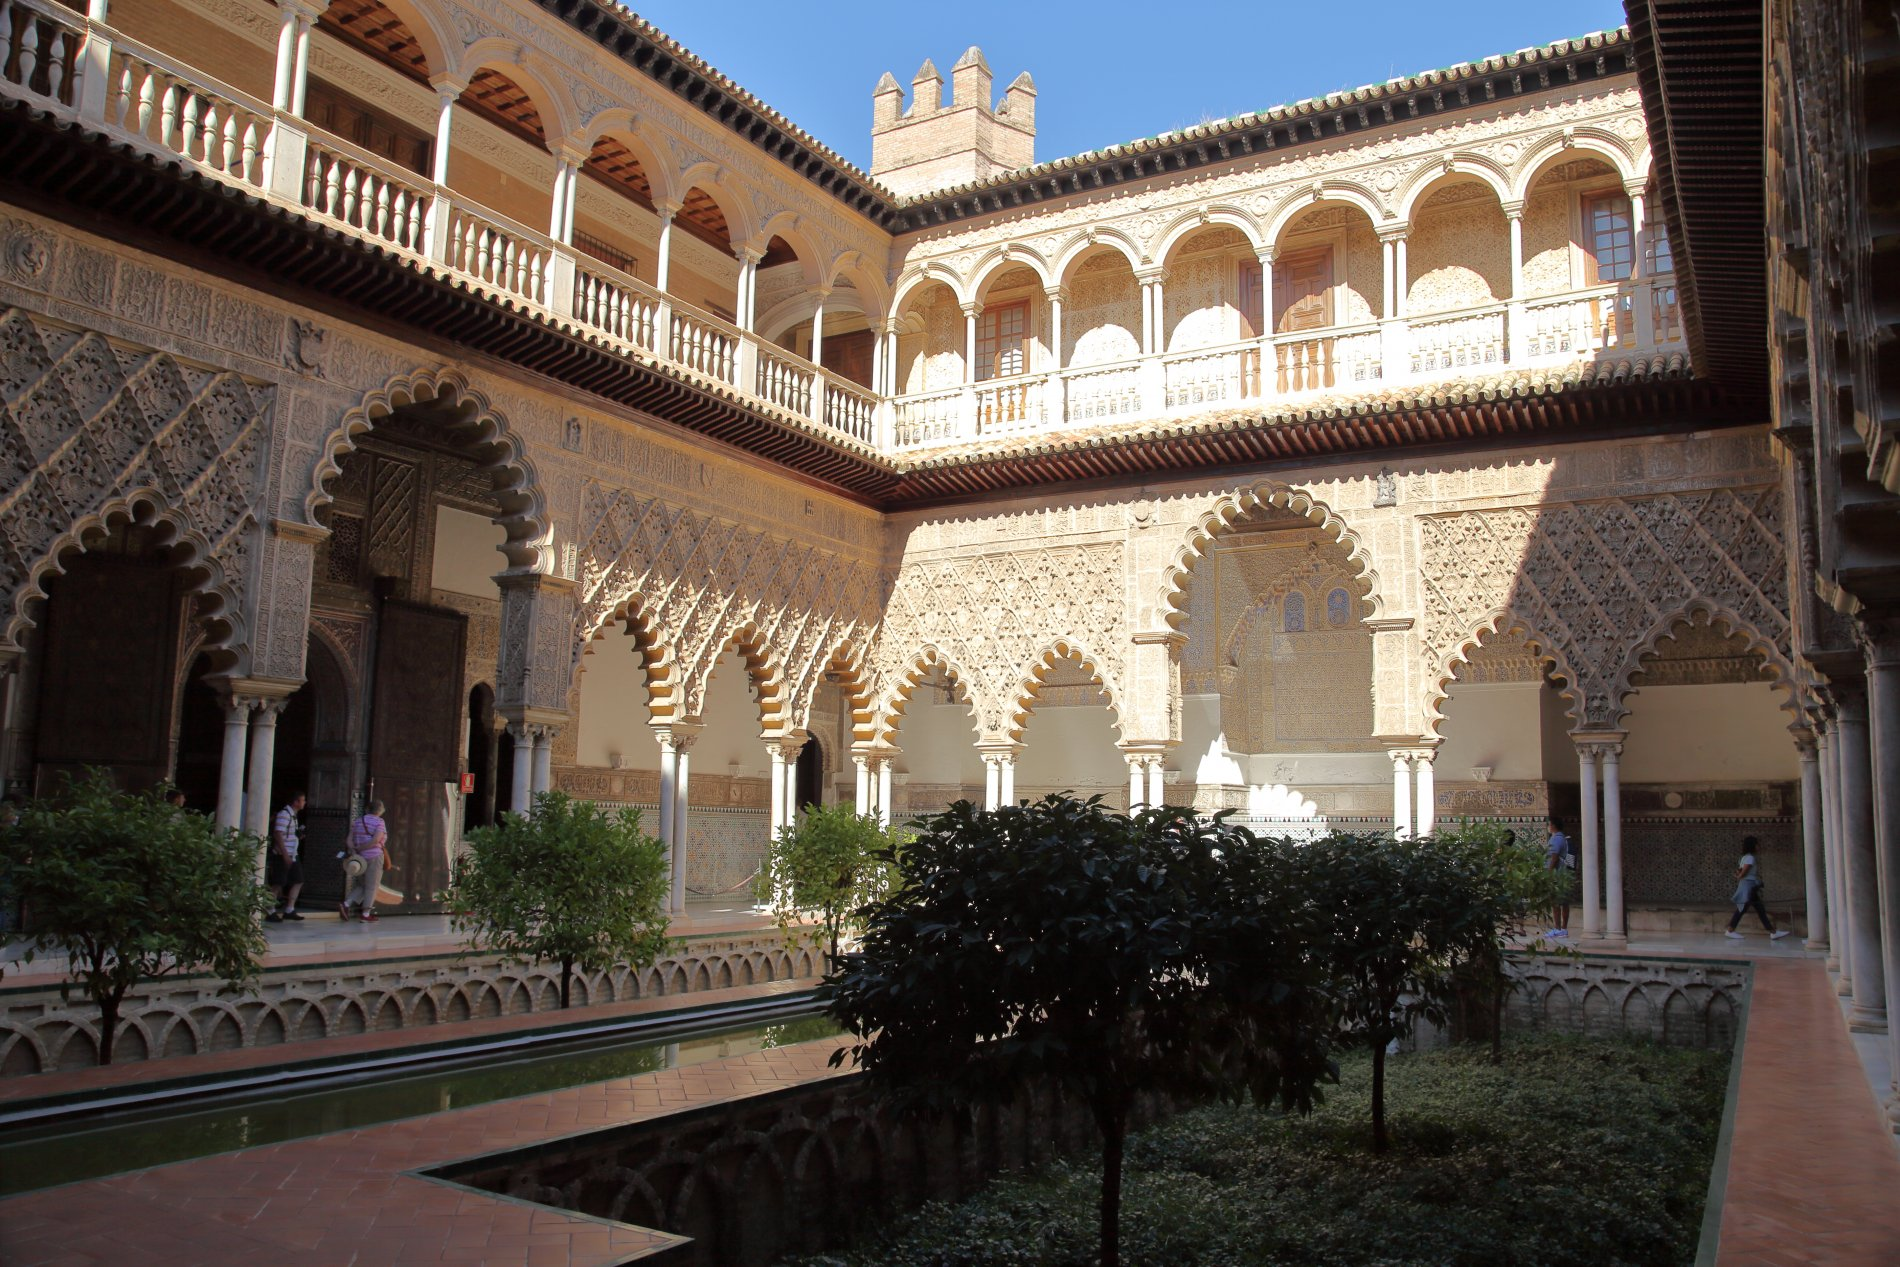 Seville-48.JPG-commment